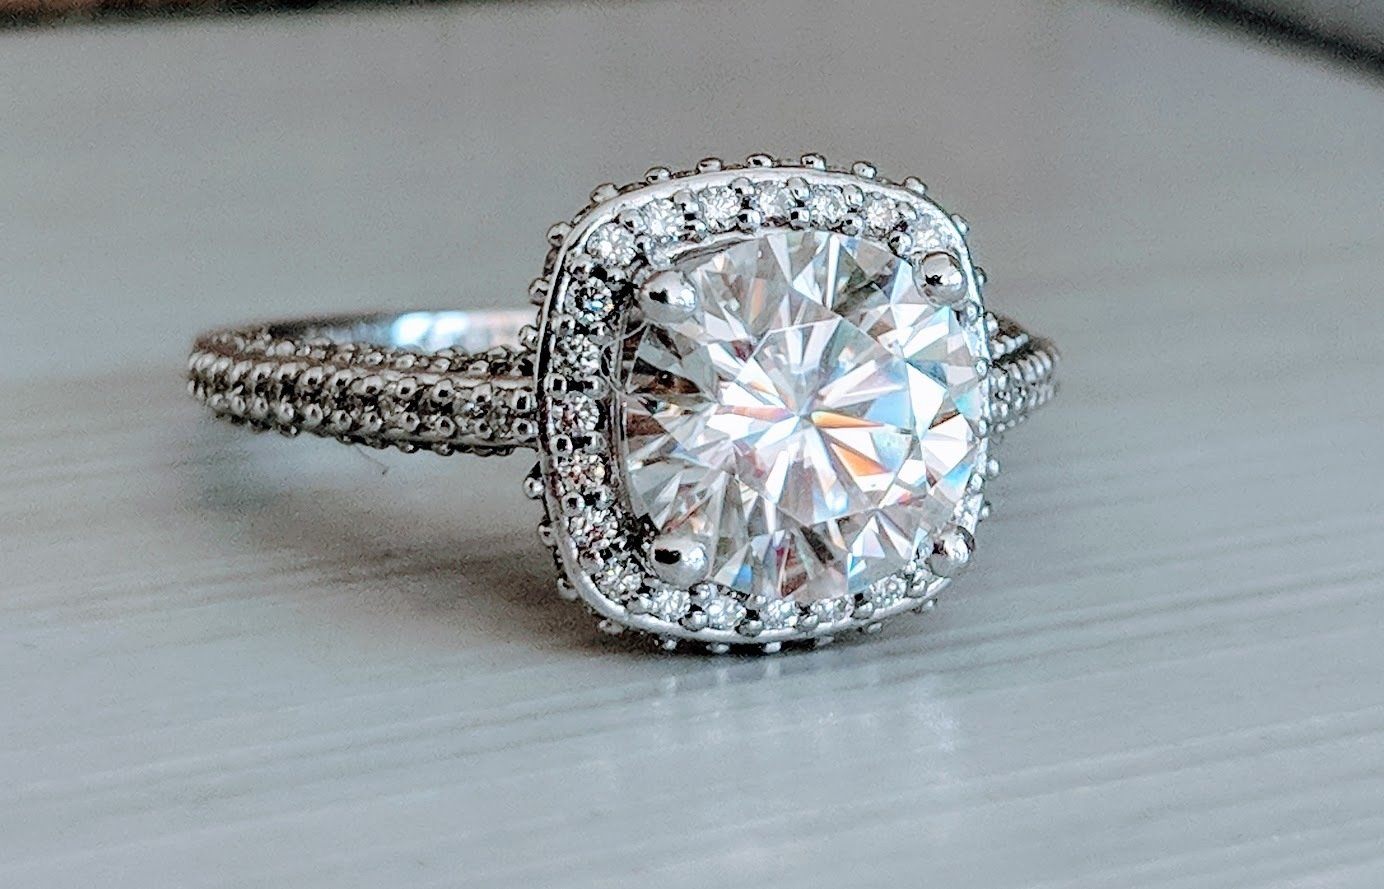 14k White Gold 5/8 ct Diamond Tiffany-Inspired Setting with 2 Carat G/H Color Moissanite, Sz 7